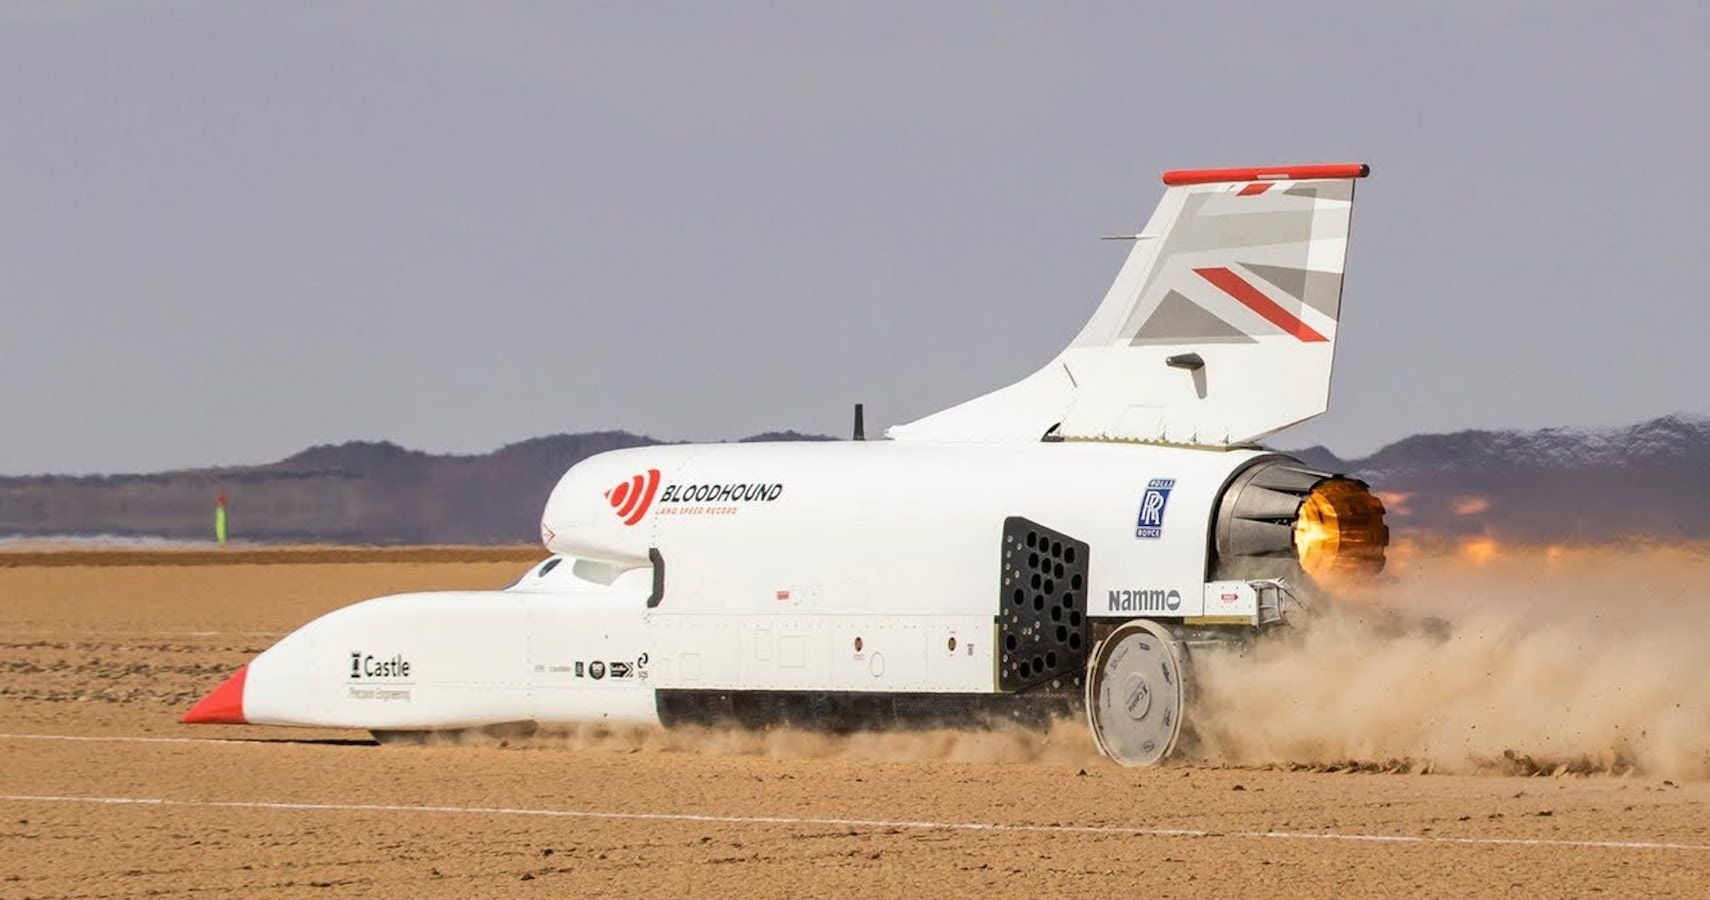 Ever Wanted To Own A Land Speeder? The Bloodhound Is Up For Sale